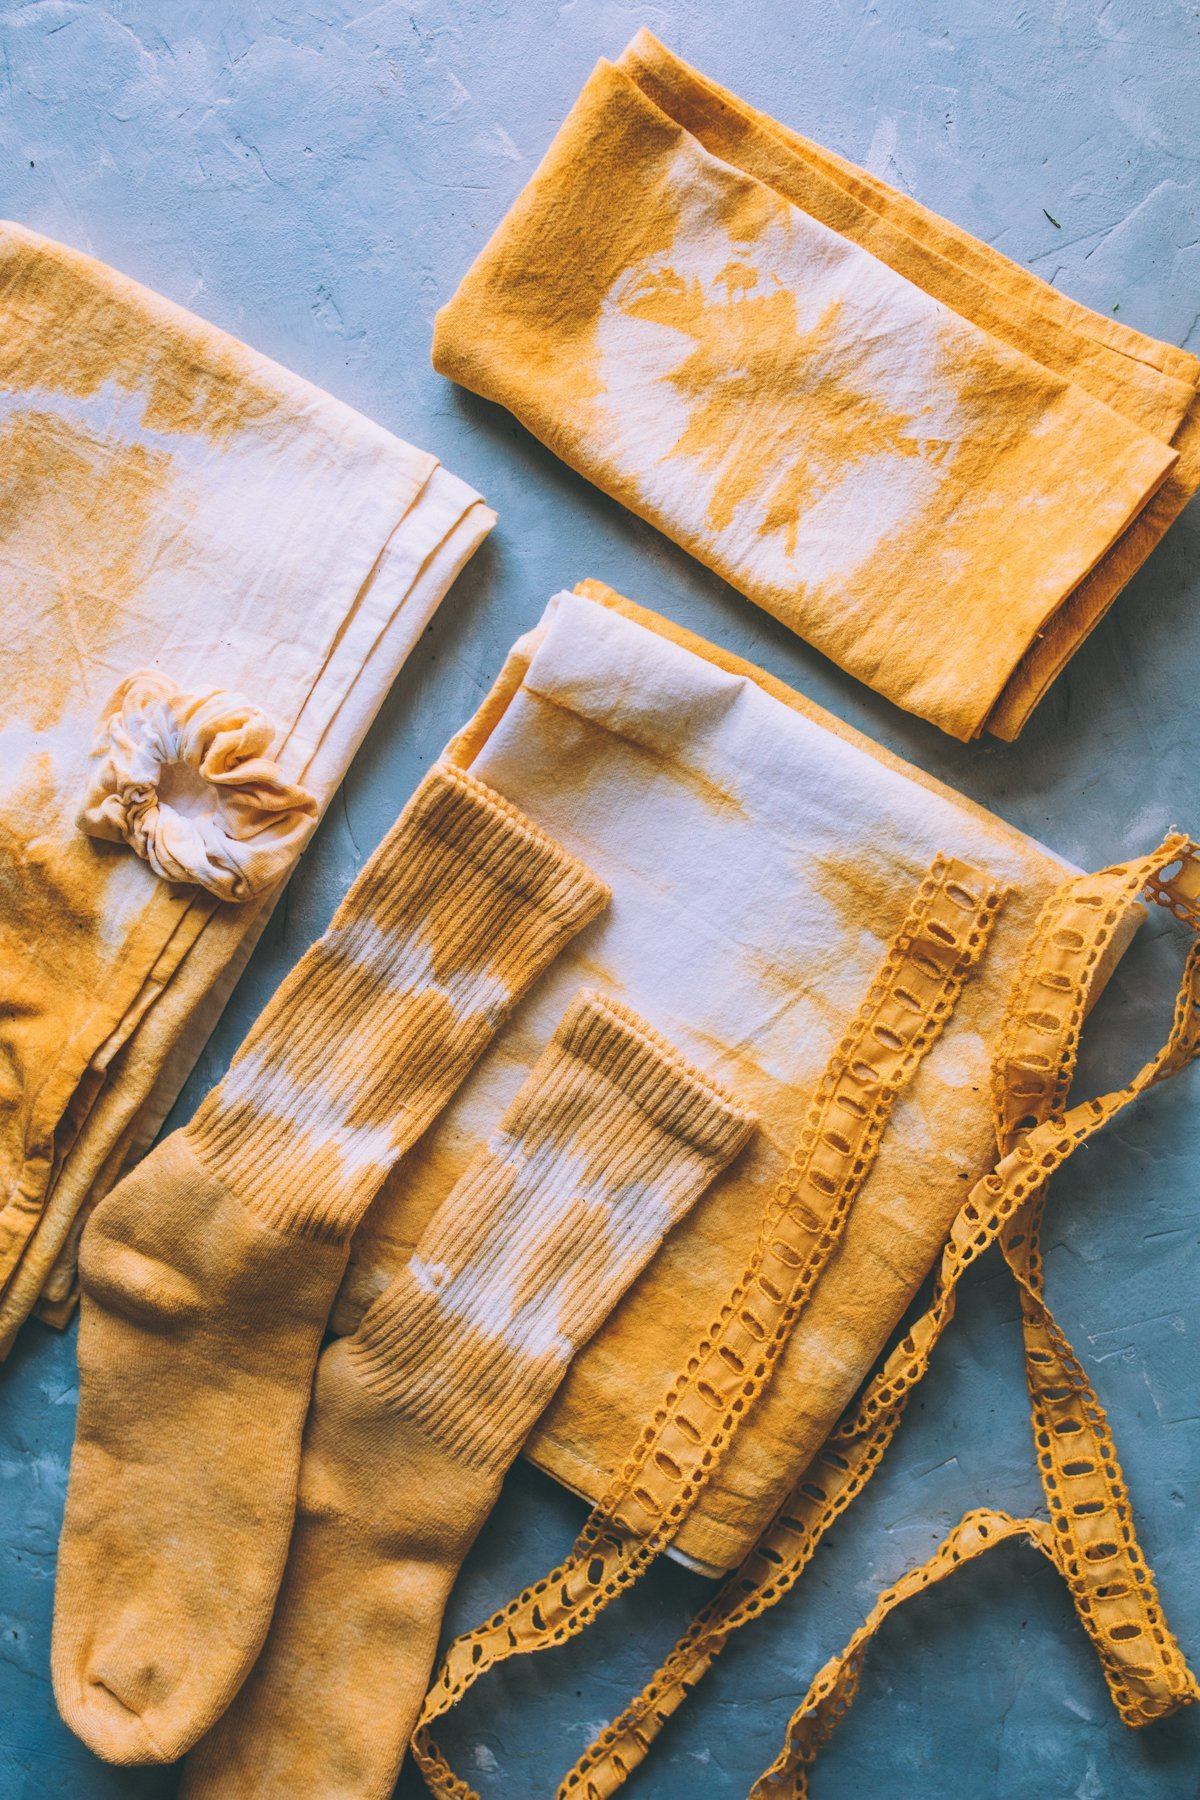 Socks, towels and lace naturally dyed with Marigold flowers